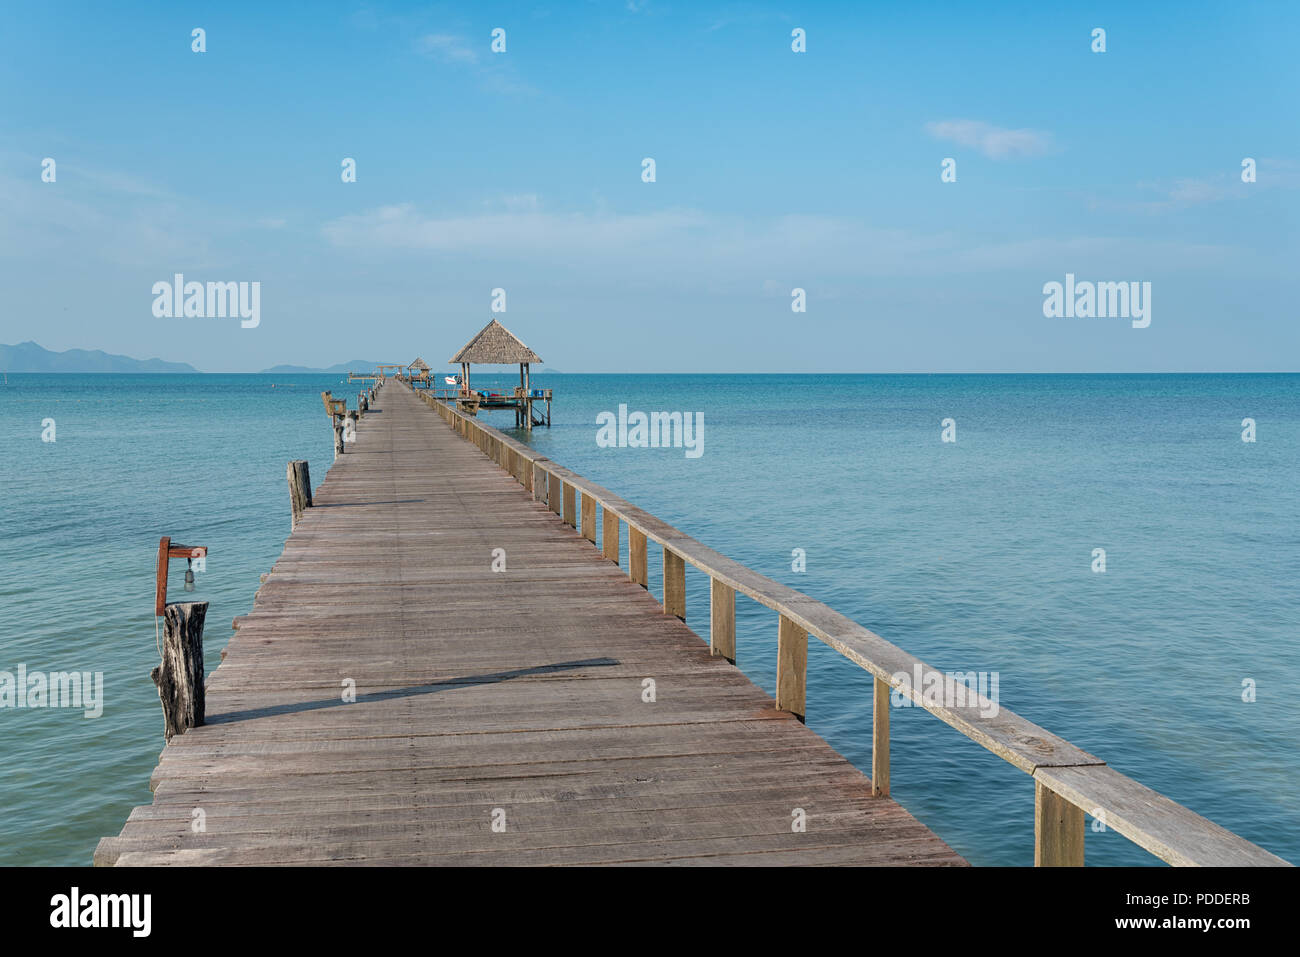 Wooden pier with boat in Phuket, Thailand. Summer, Travel, Vacation and Holiday concept. - Stock Image